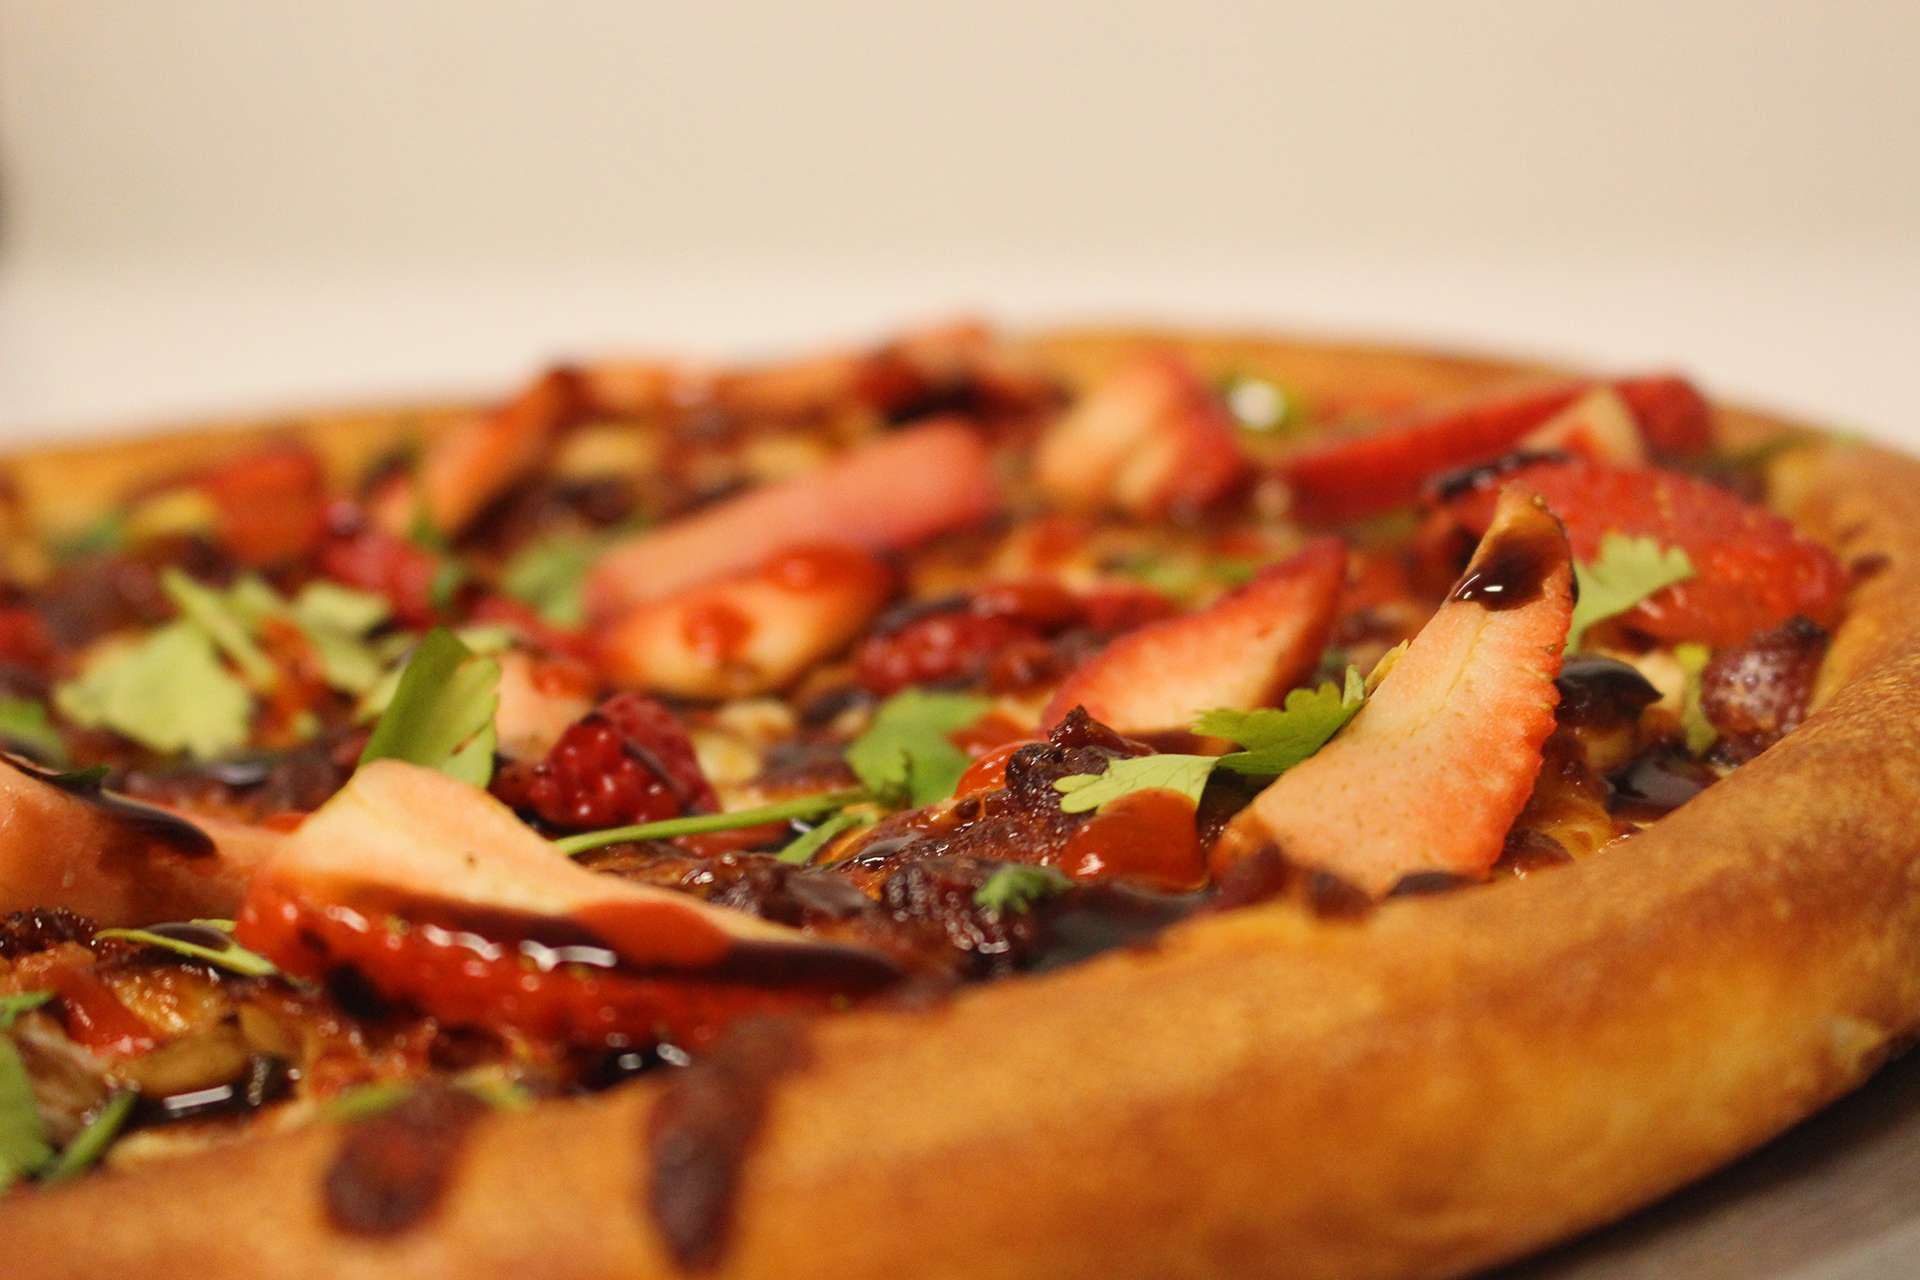 sloopy's award-winning paige's delight pizza